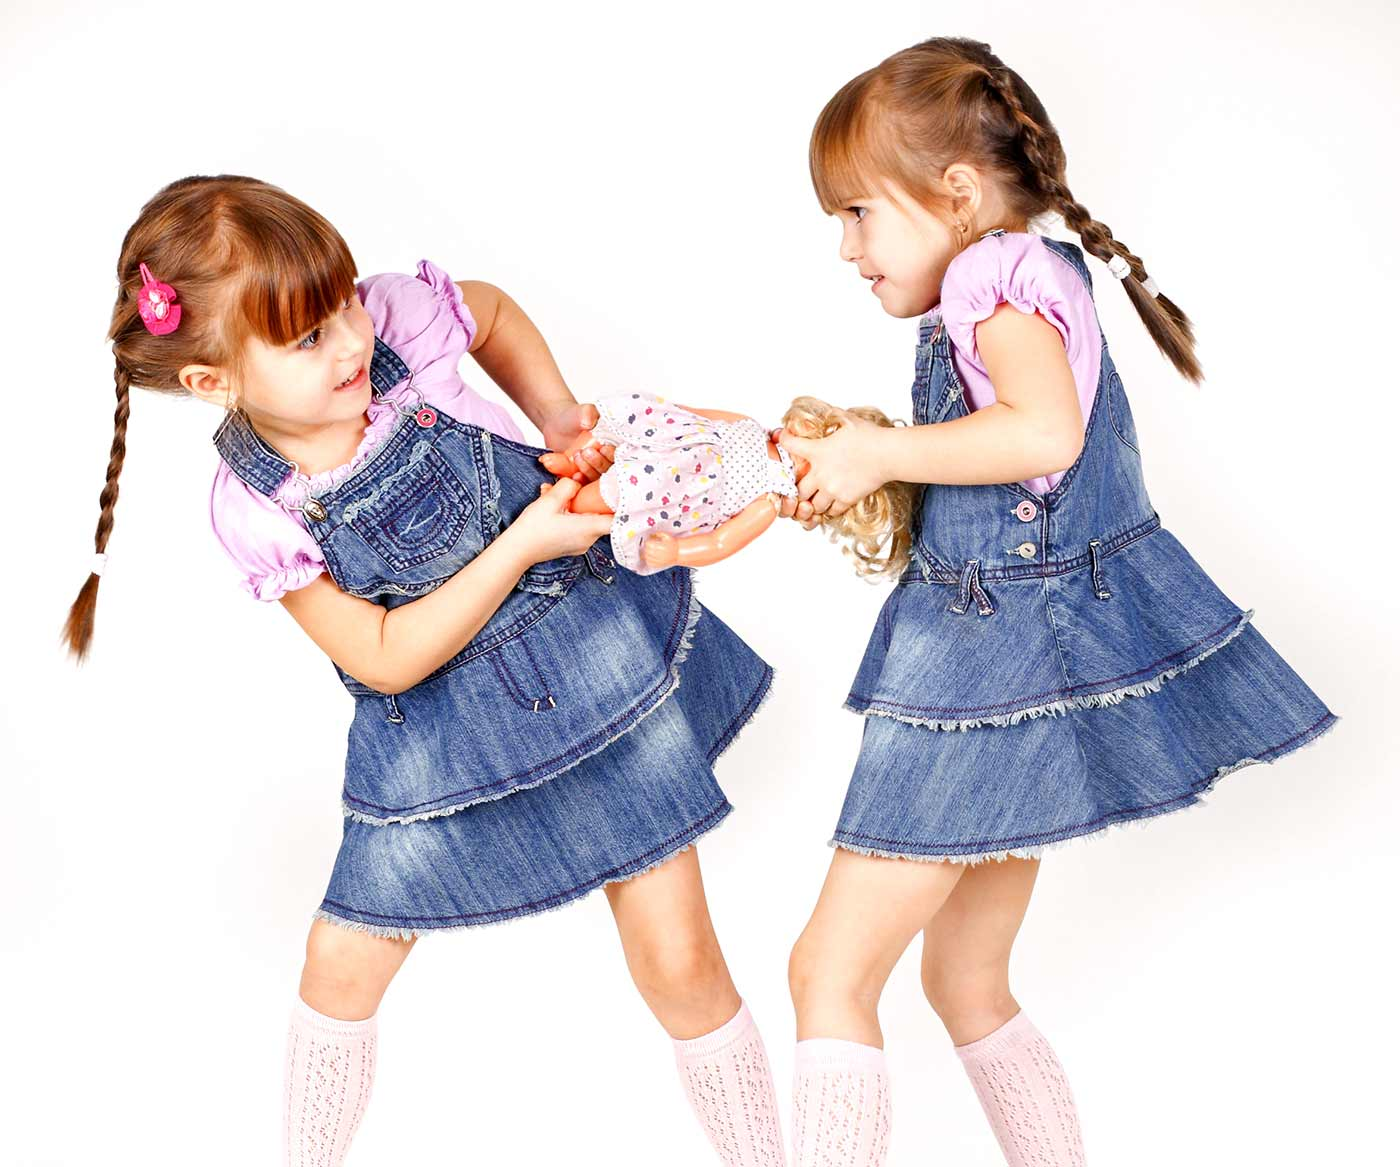 2 girls fighting over a doll